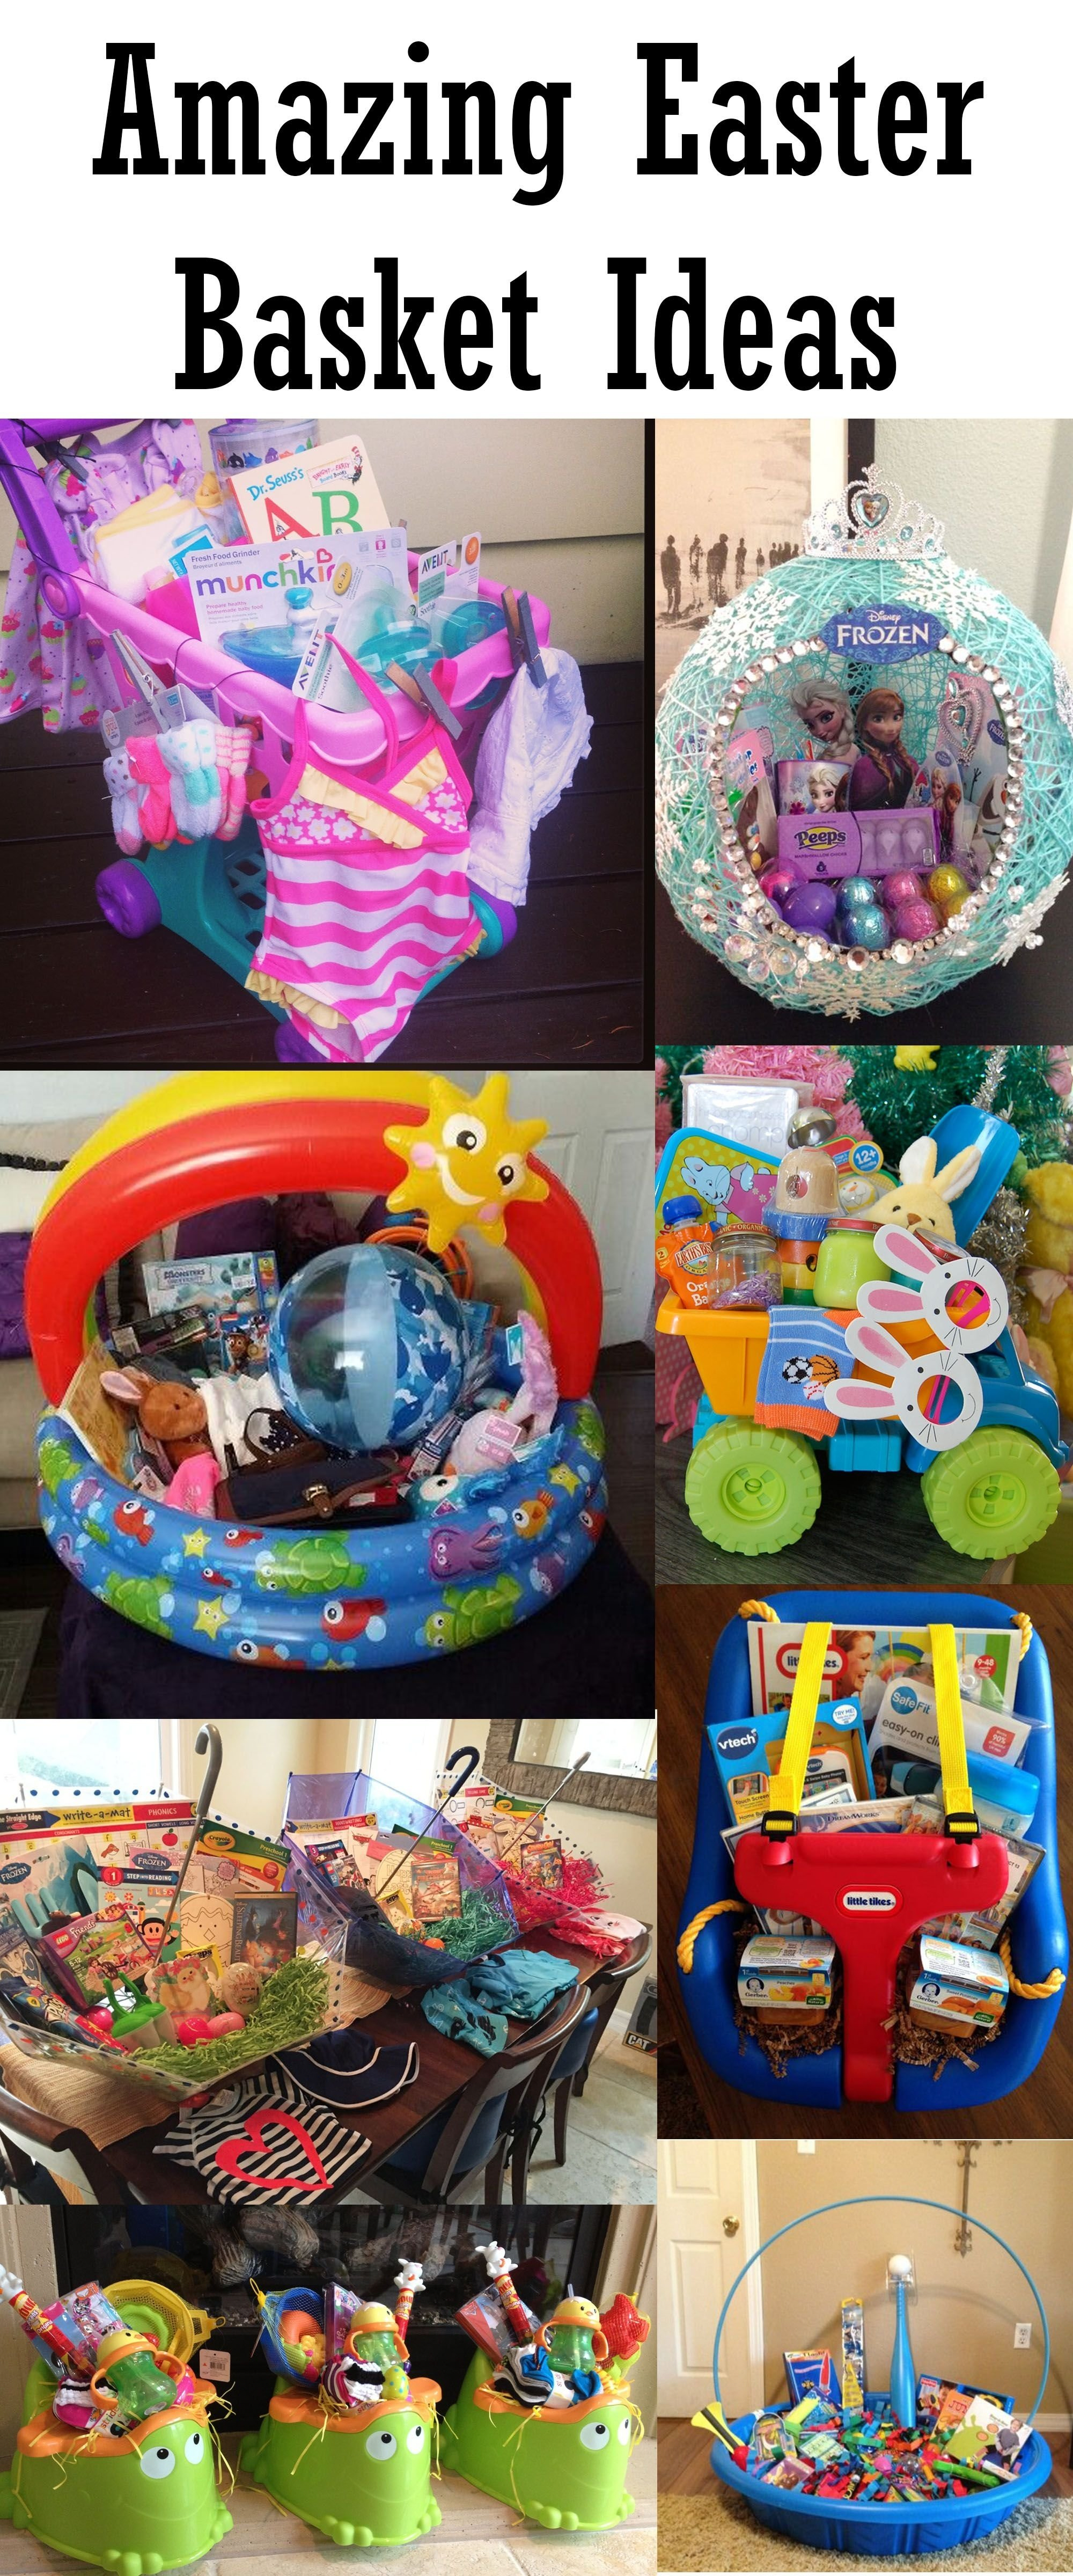 10 Most Recommended Easter Basket Ideas For Tweens amazing easter basket ideas basket ideas easter baskets and easter 4 2020